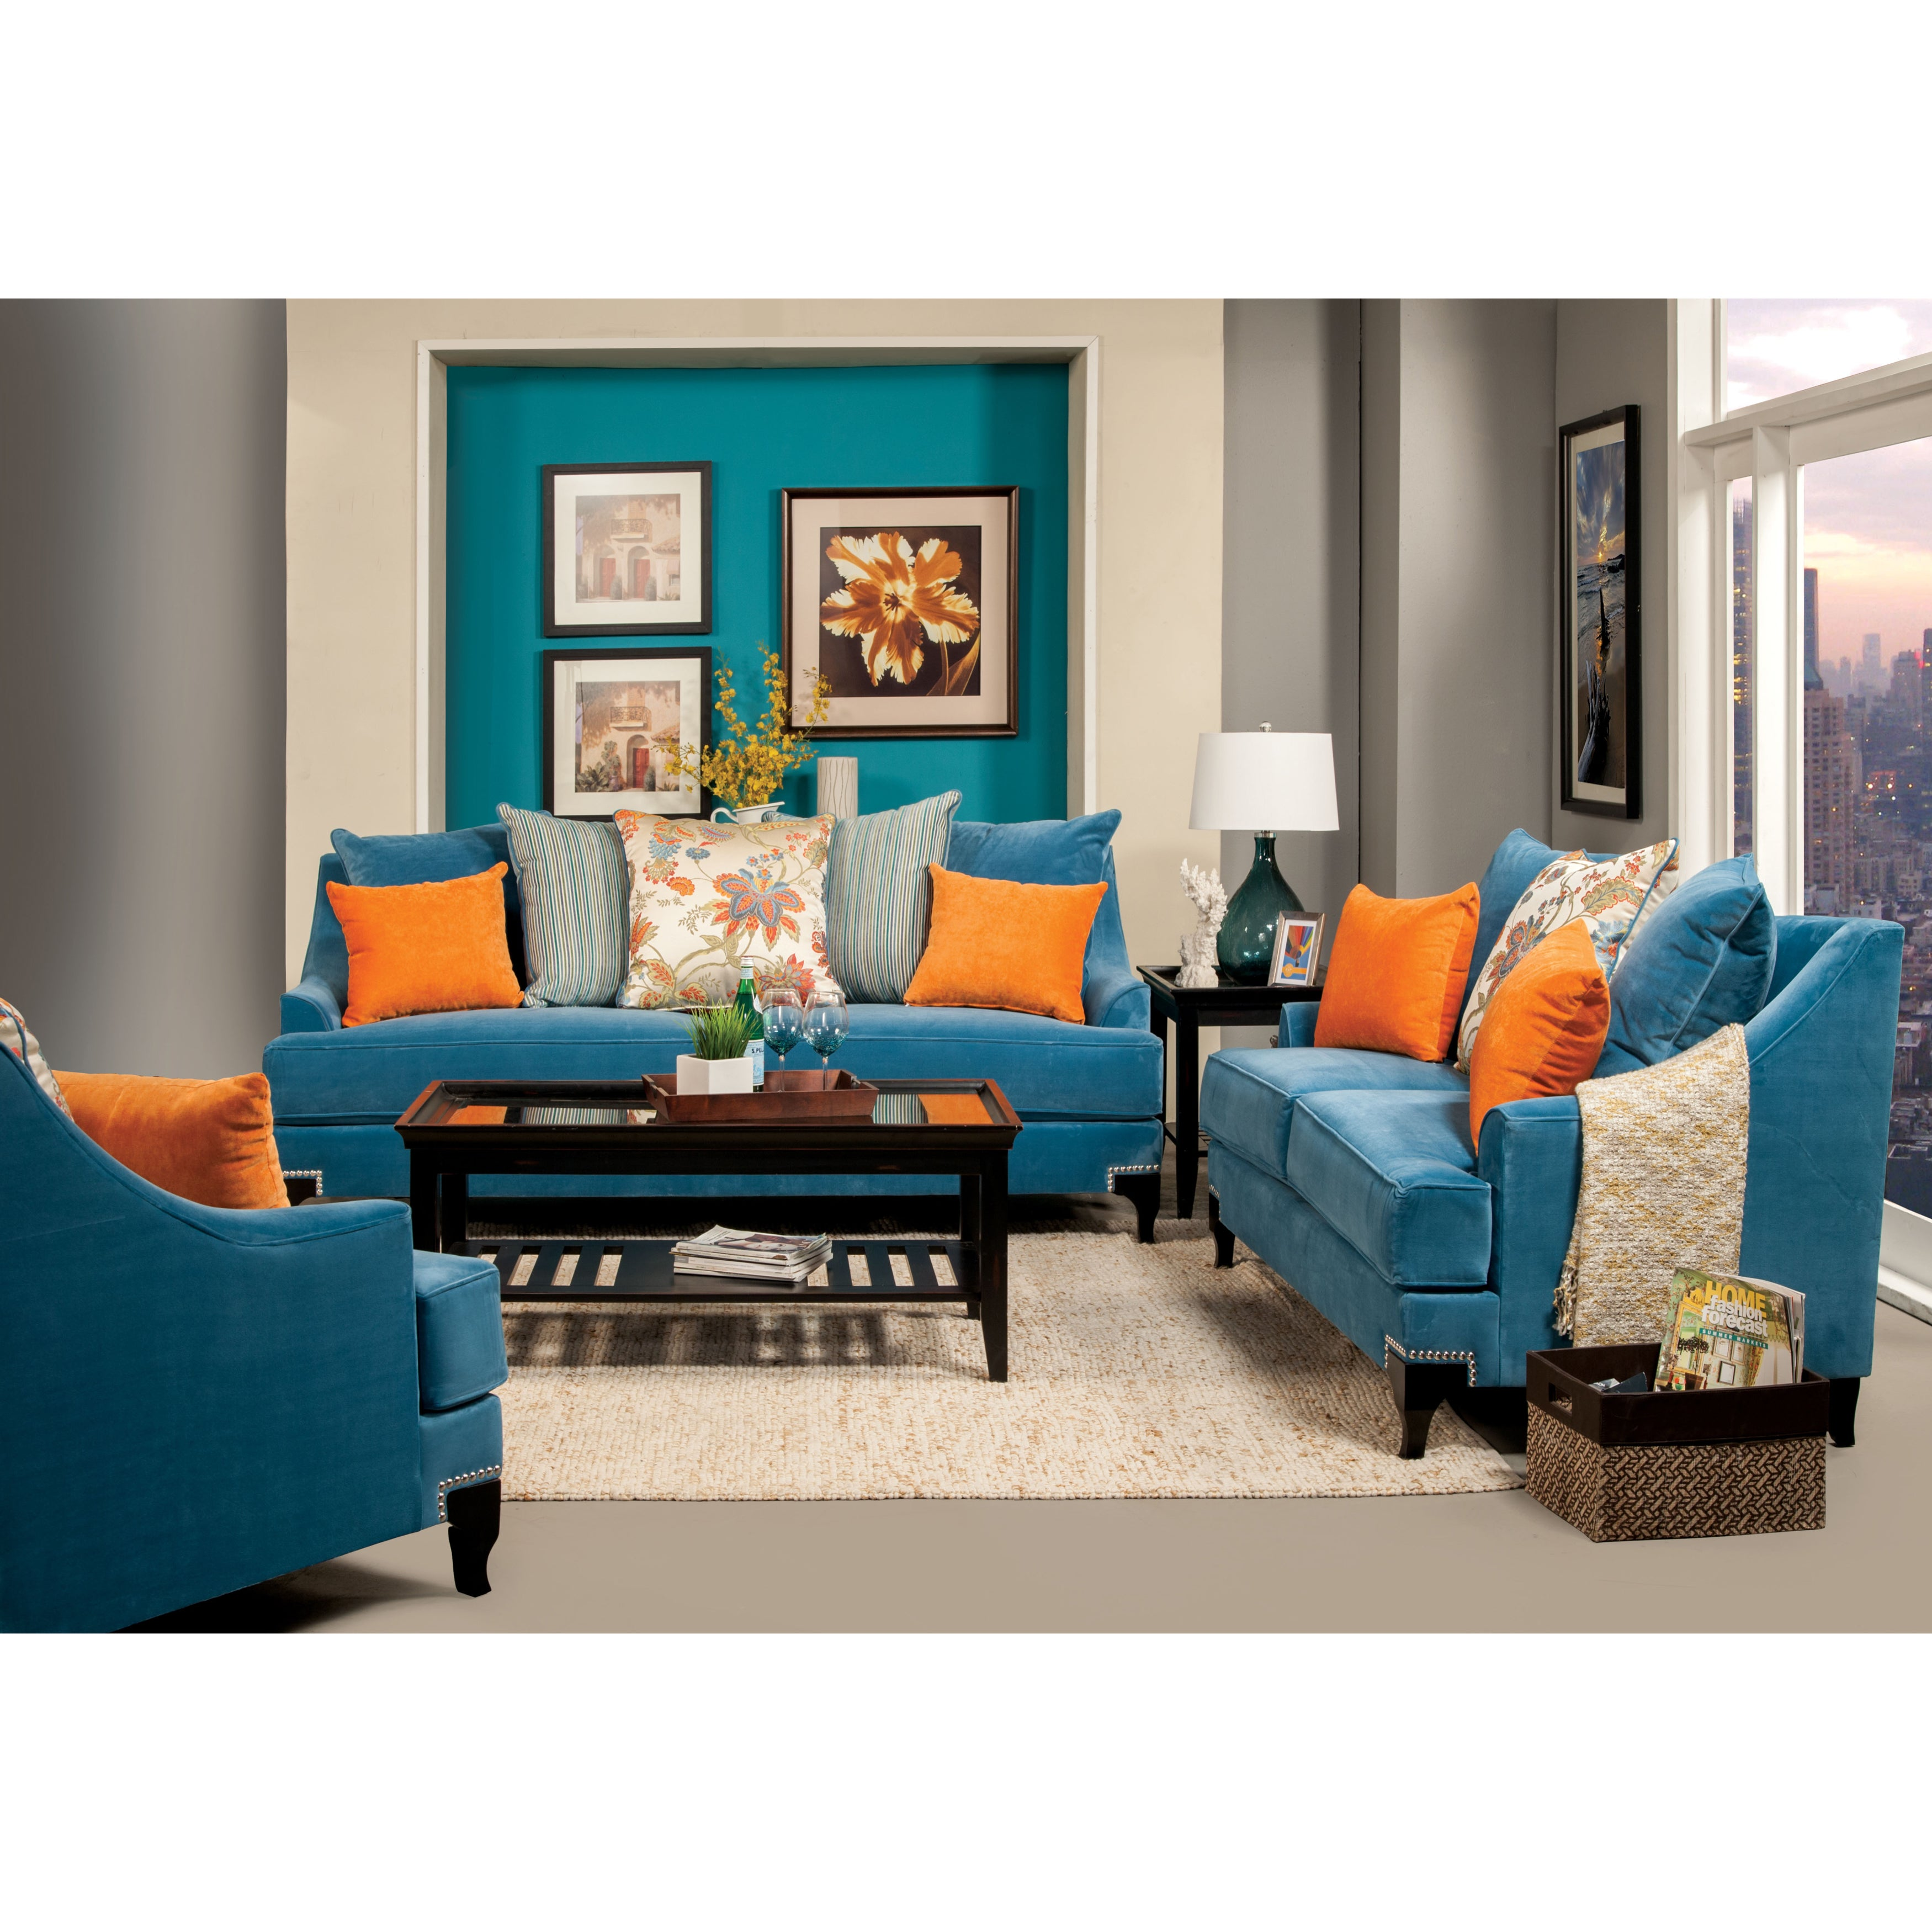 Furniture of America Estella Retro 3 Piece Peacock Blue Sofa Set